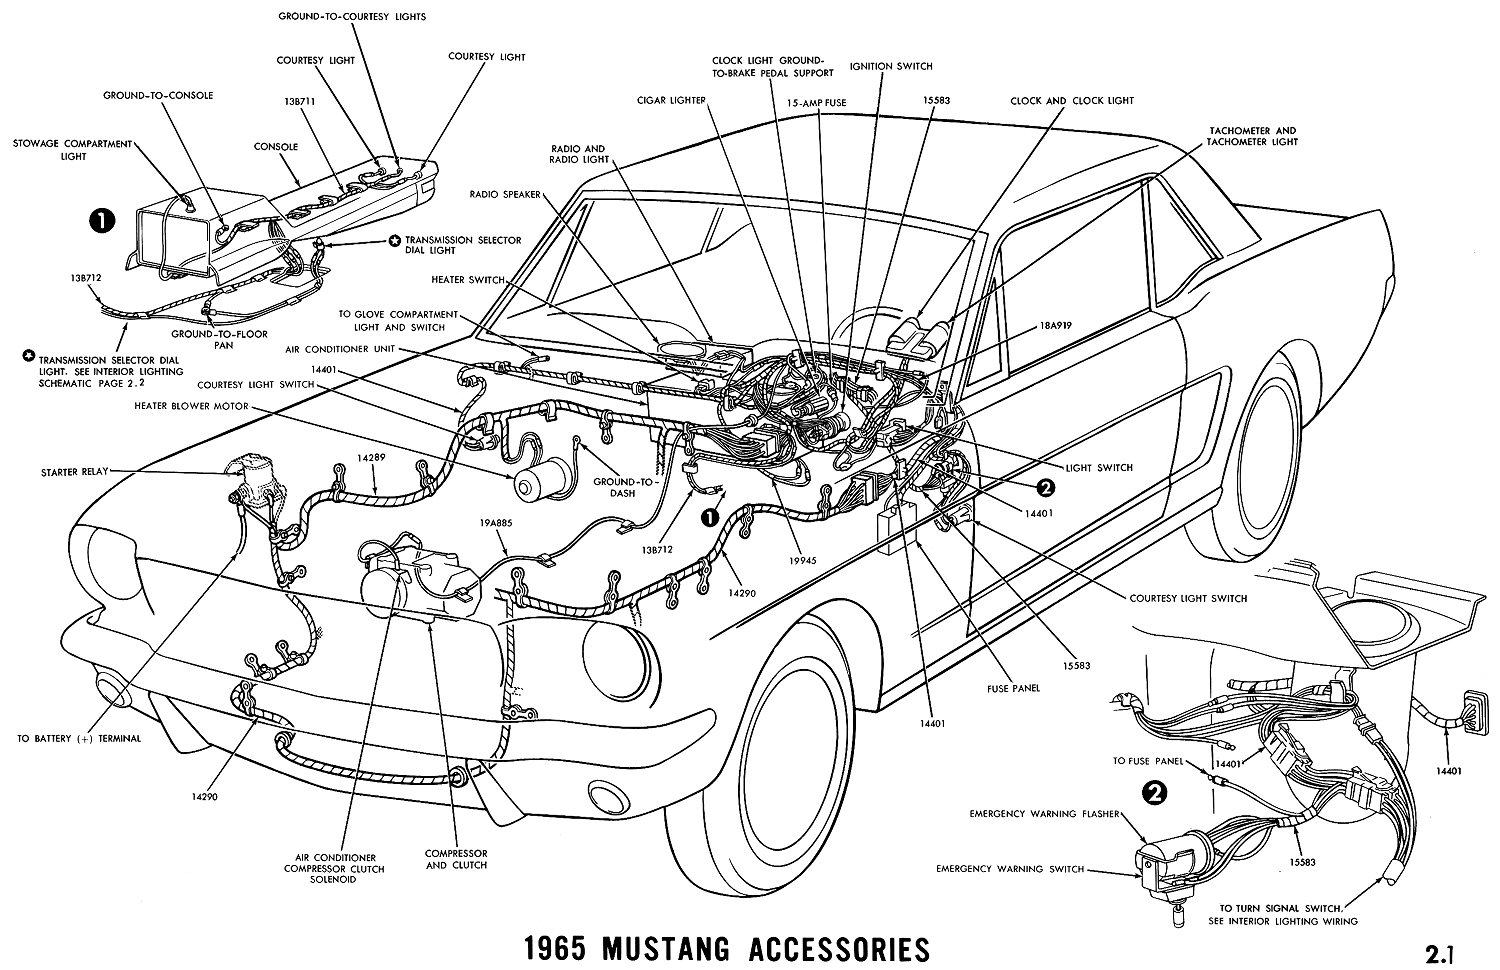 1965h 1965 mustang wiring diagrams average joe restoration 65 mustang radio wiring diagram at soozxer.org